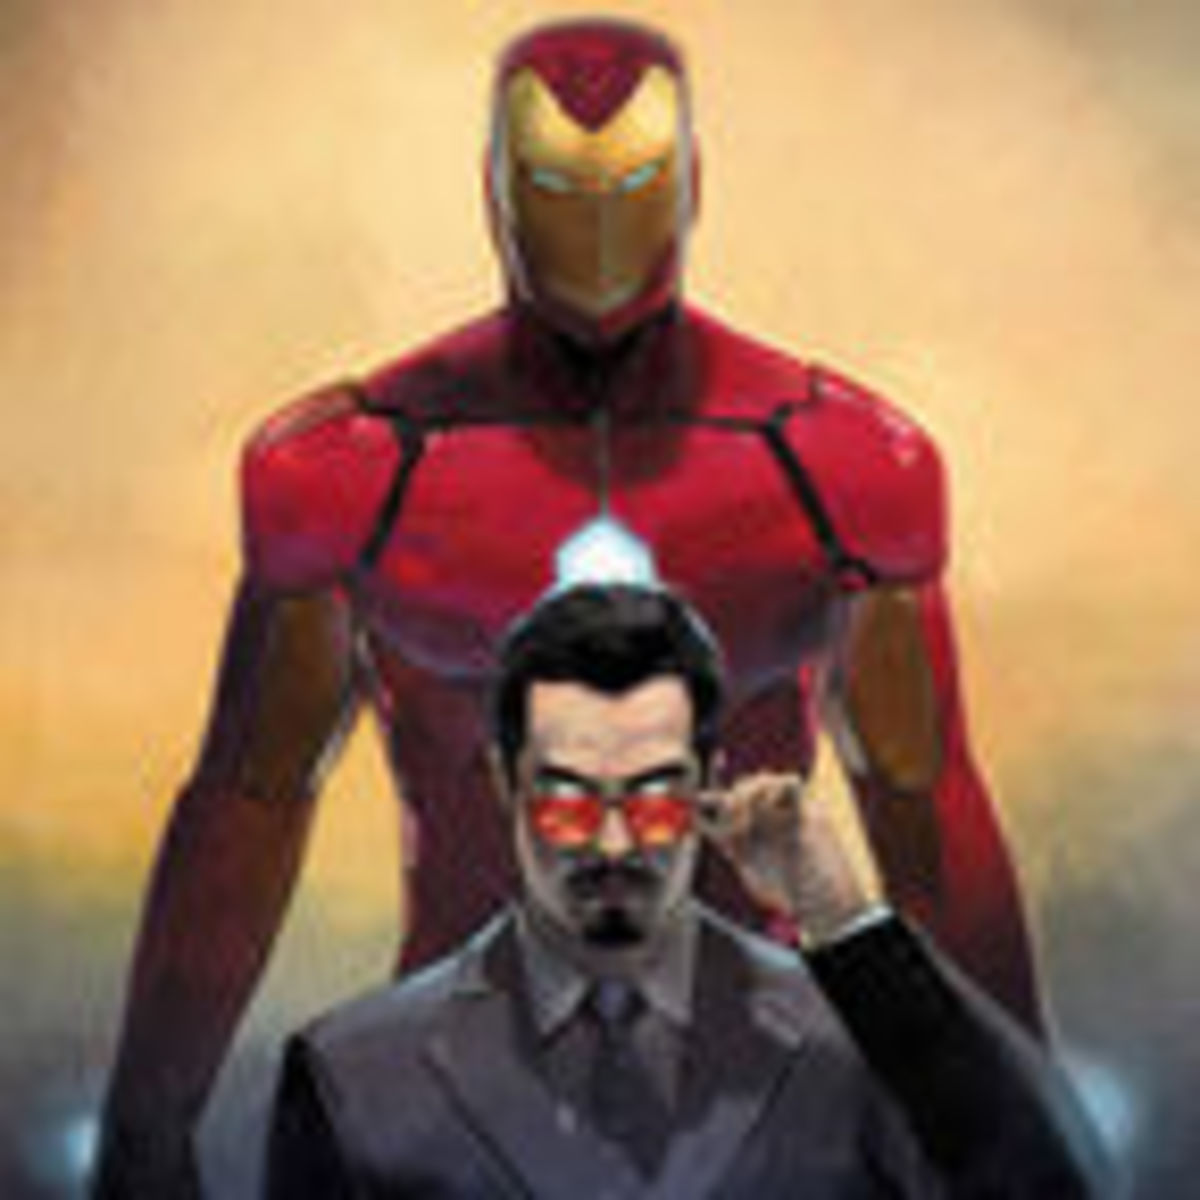 A Clinical Perspective on Panic and PTSD in Iron Man 3